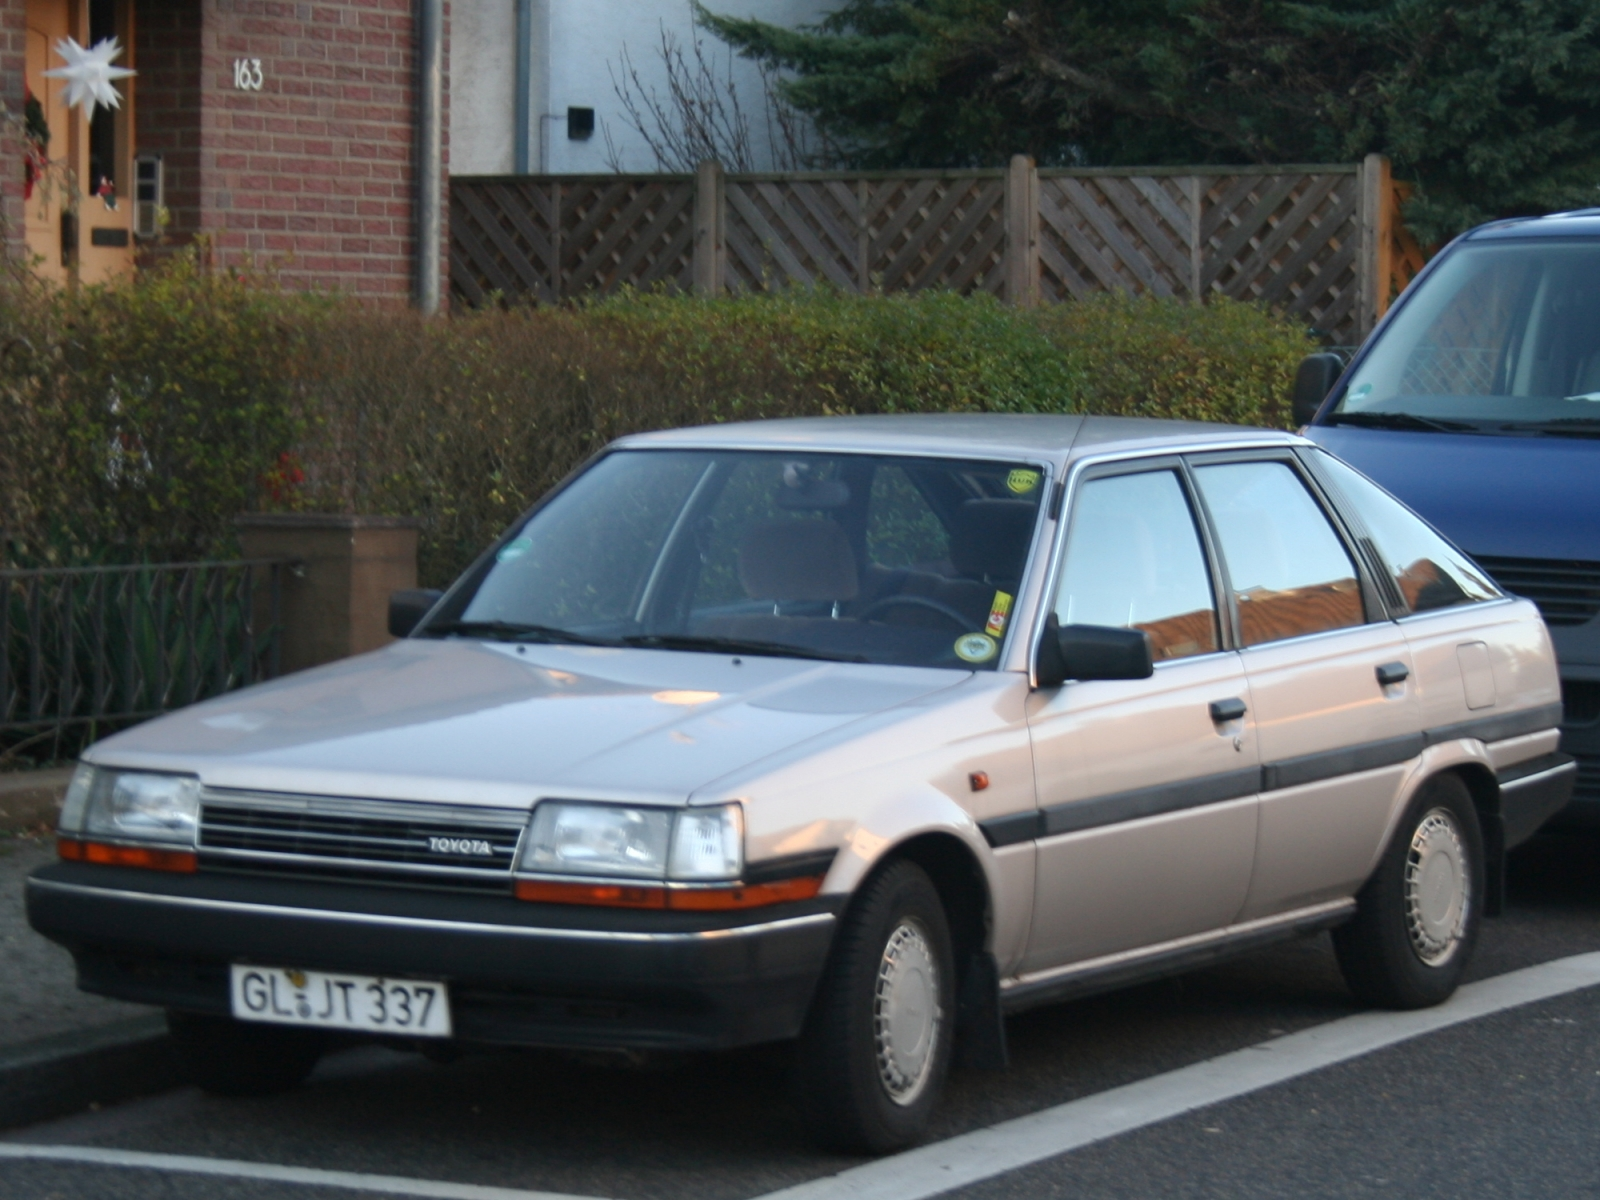 hight resolution of pictures of toyota carina ii station wag 1991 12